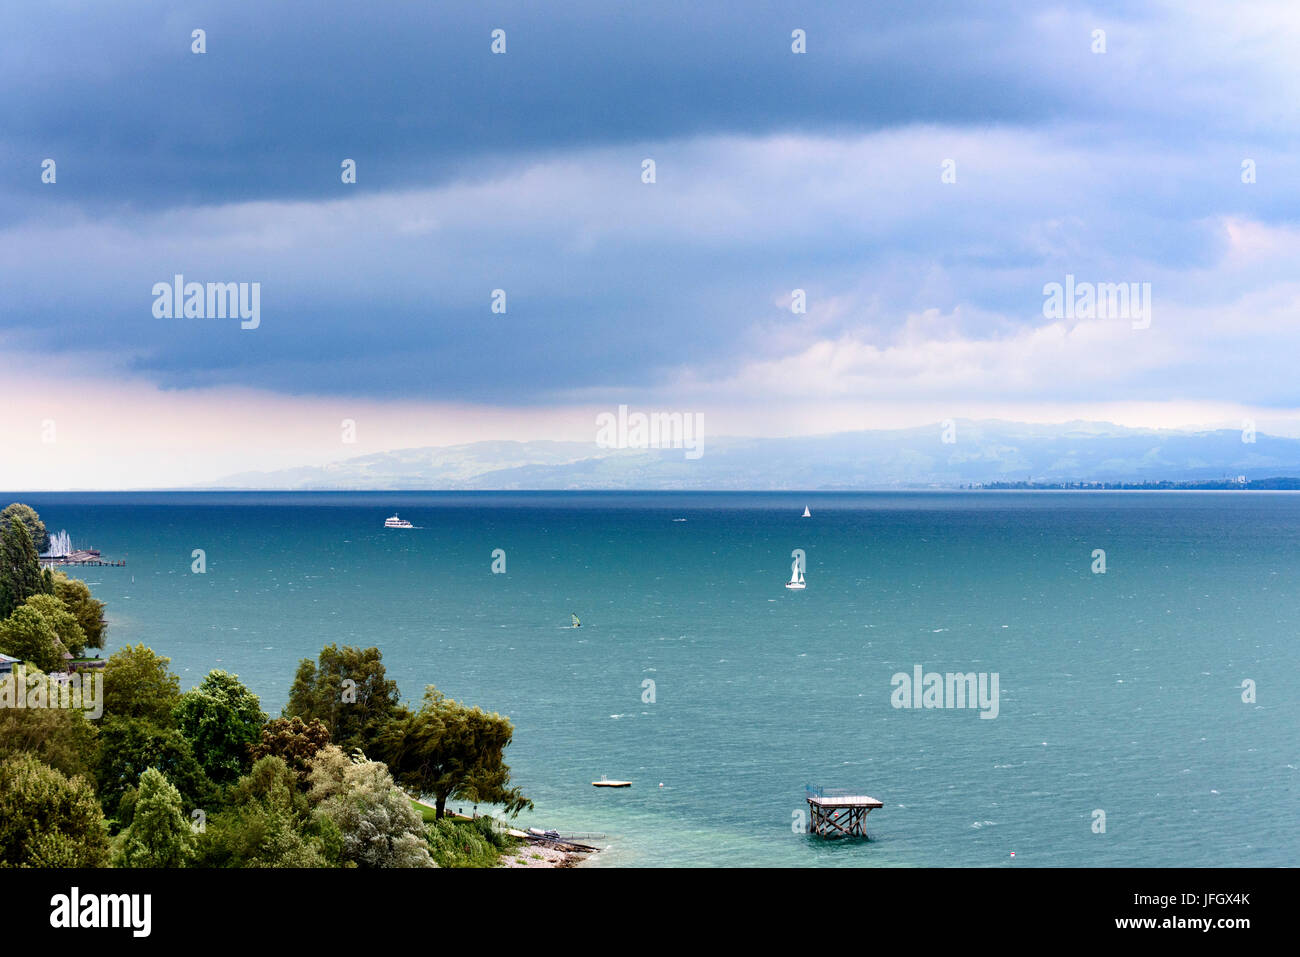 View at Lake of Constance, dark clouds, Überlinger lake with Meersburg, Baden-Wurttemberg, Germany - Stock Image